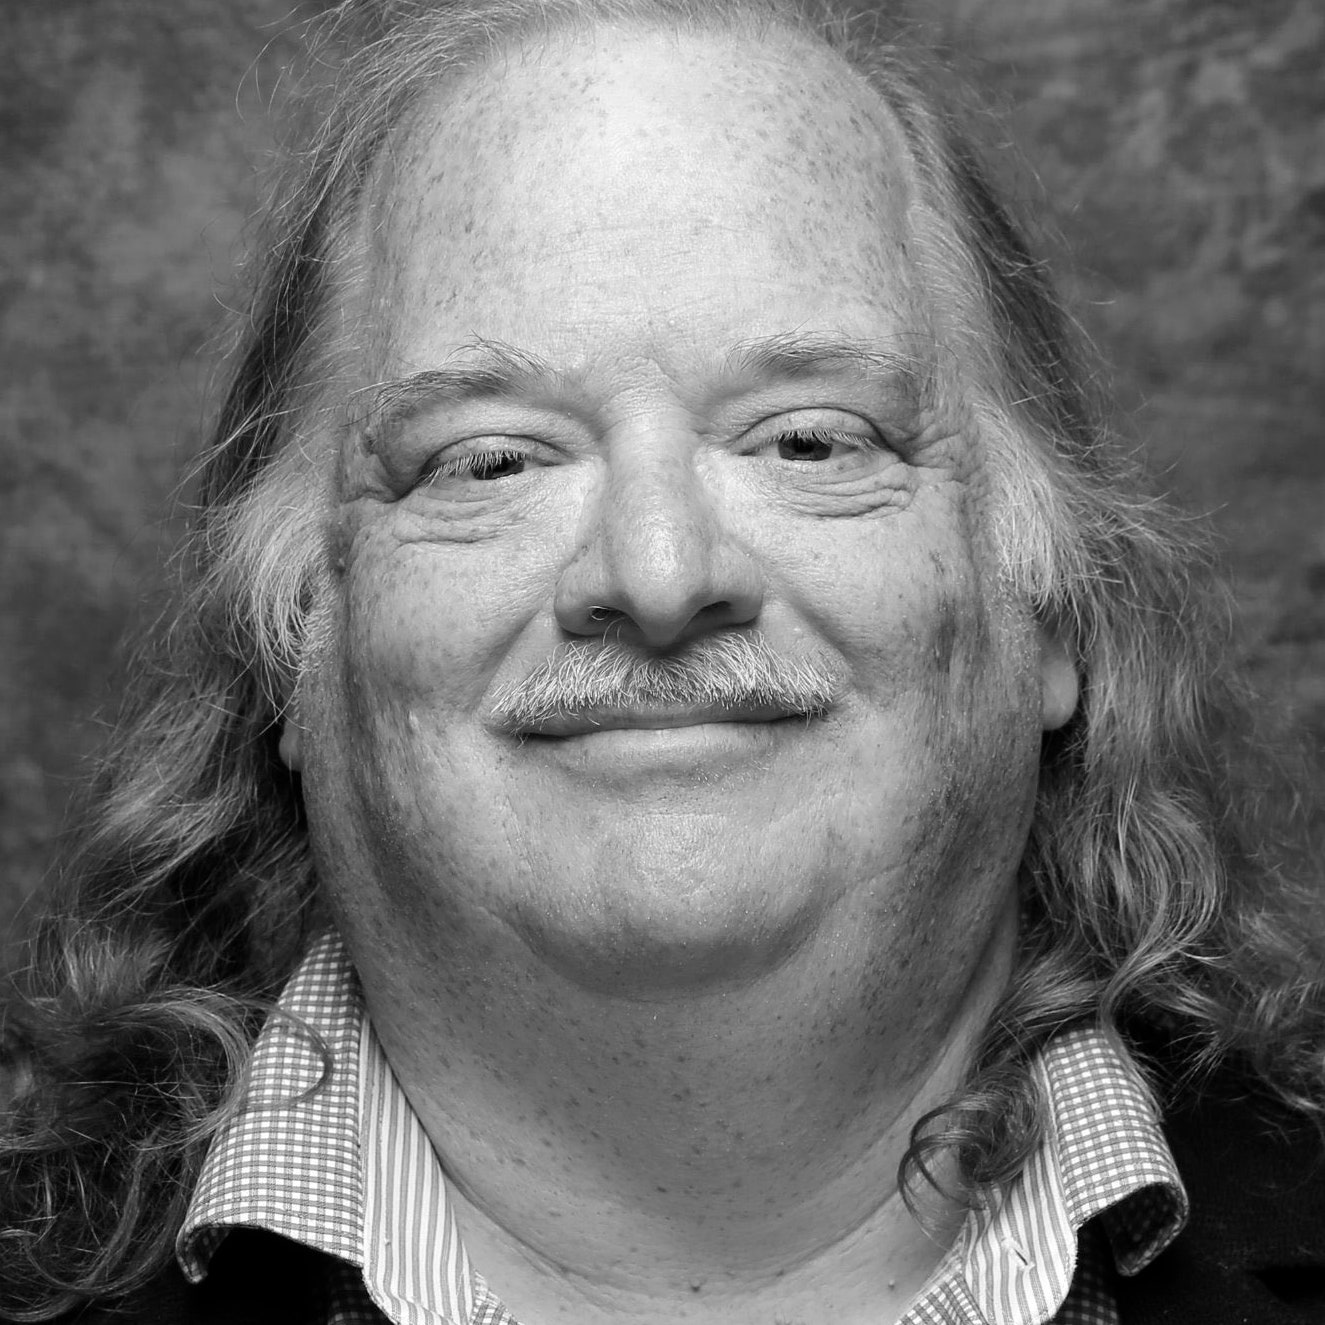 Jonathan Gold eats as if his manhood depended on it—he fears only scrambled eggs.